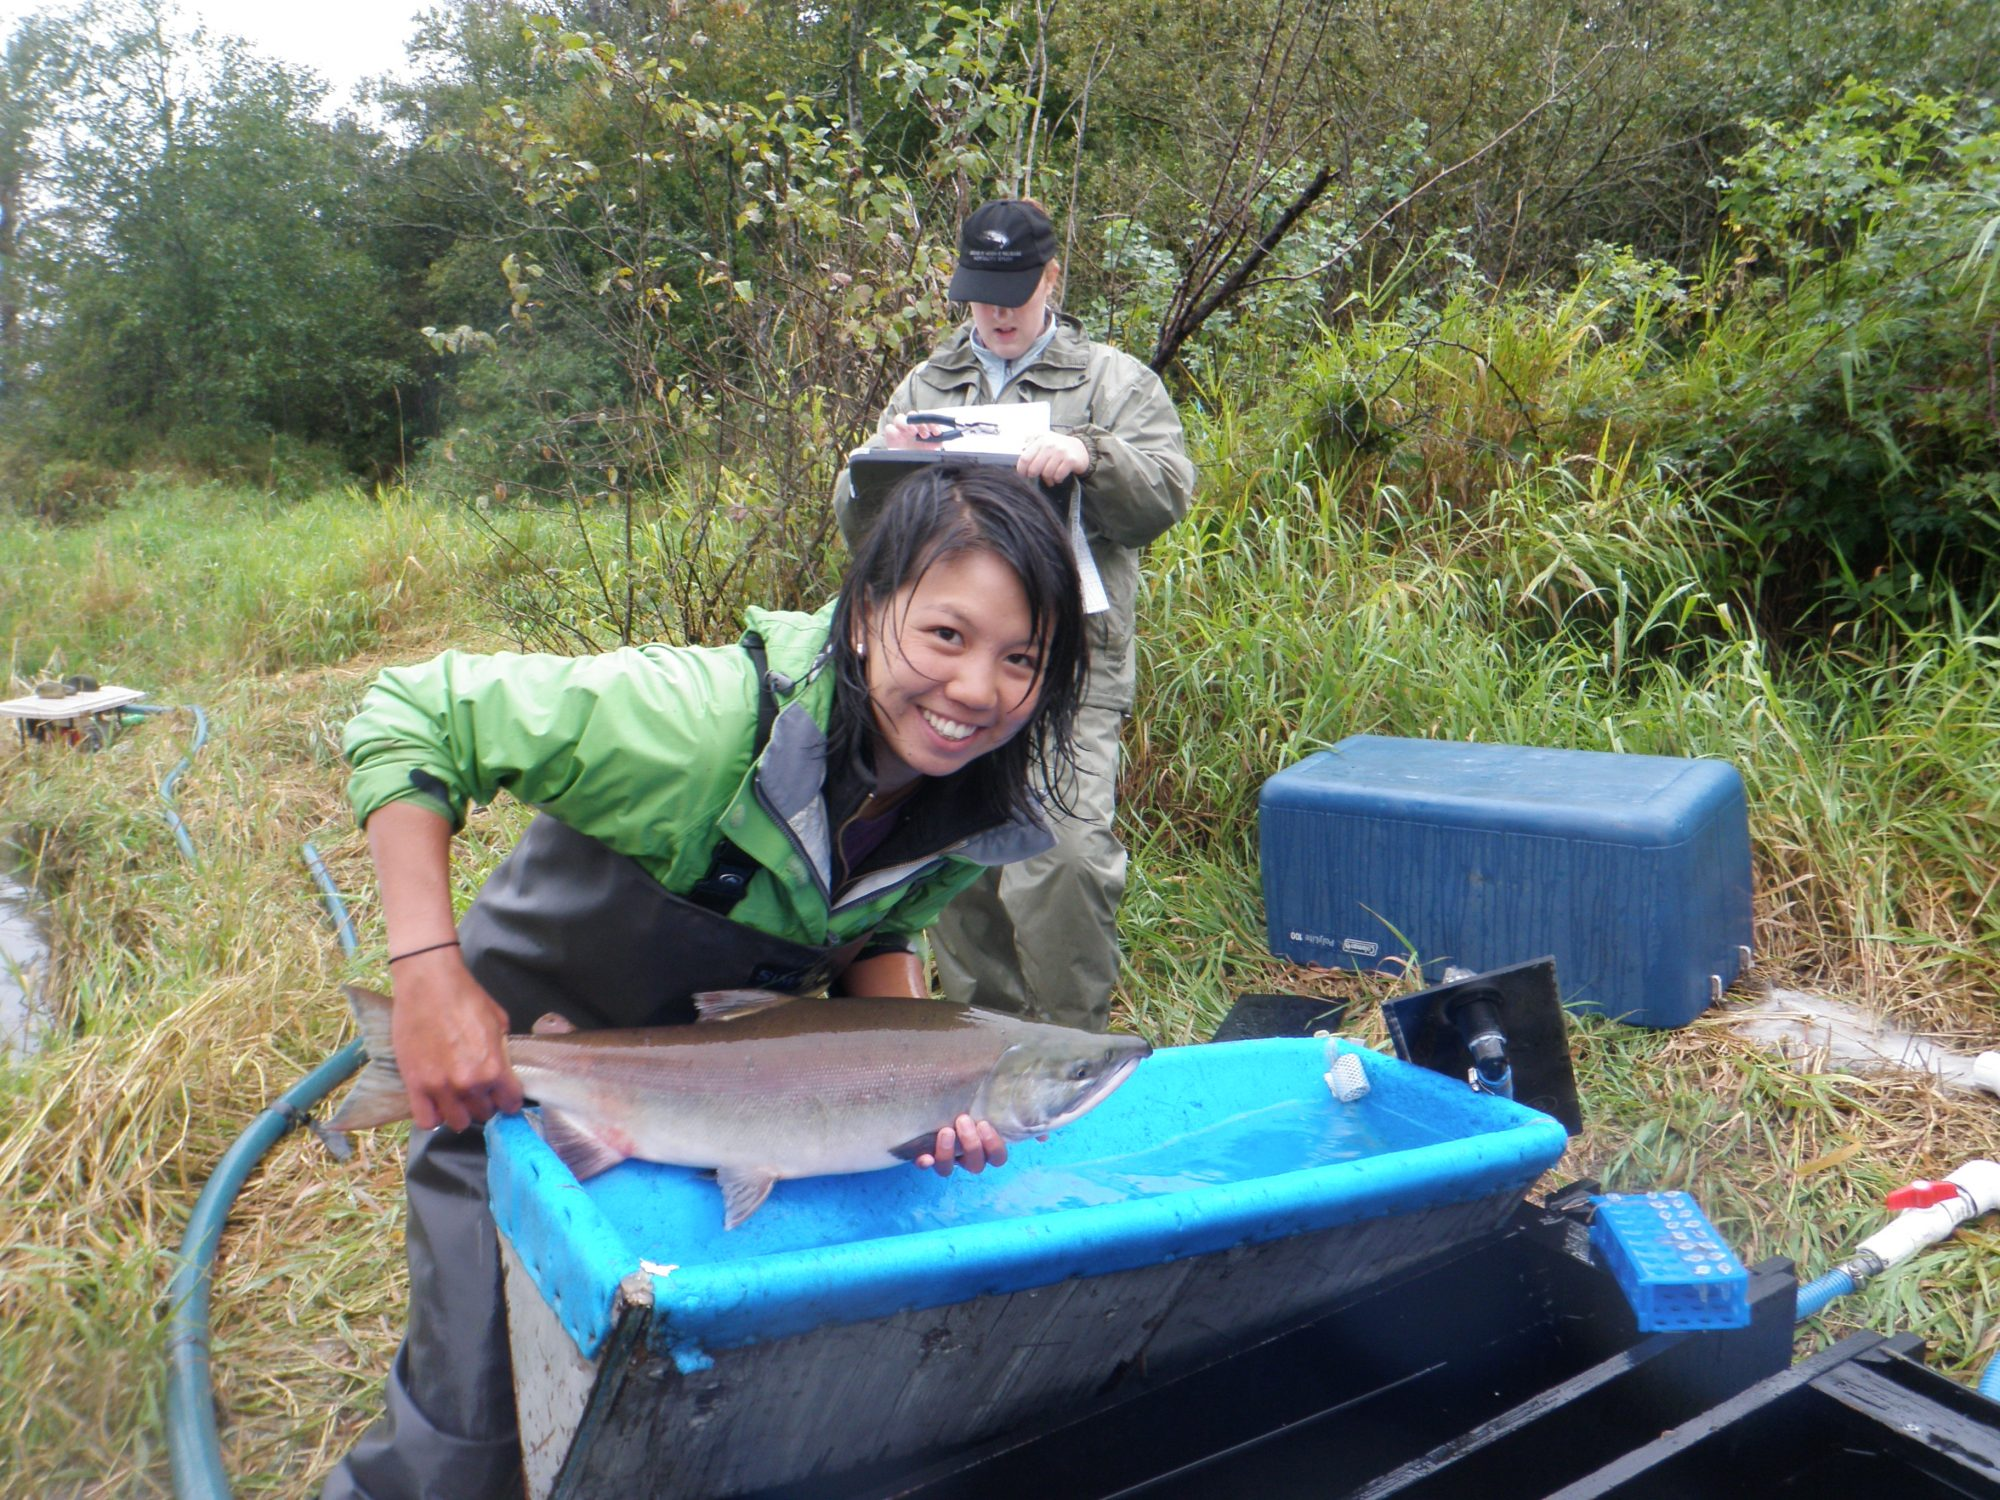 Vivian Nguyen conducting research in B.C.